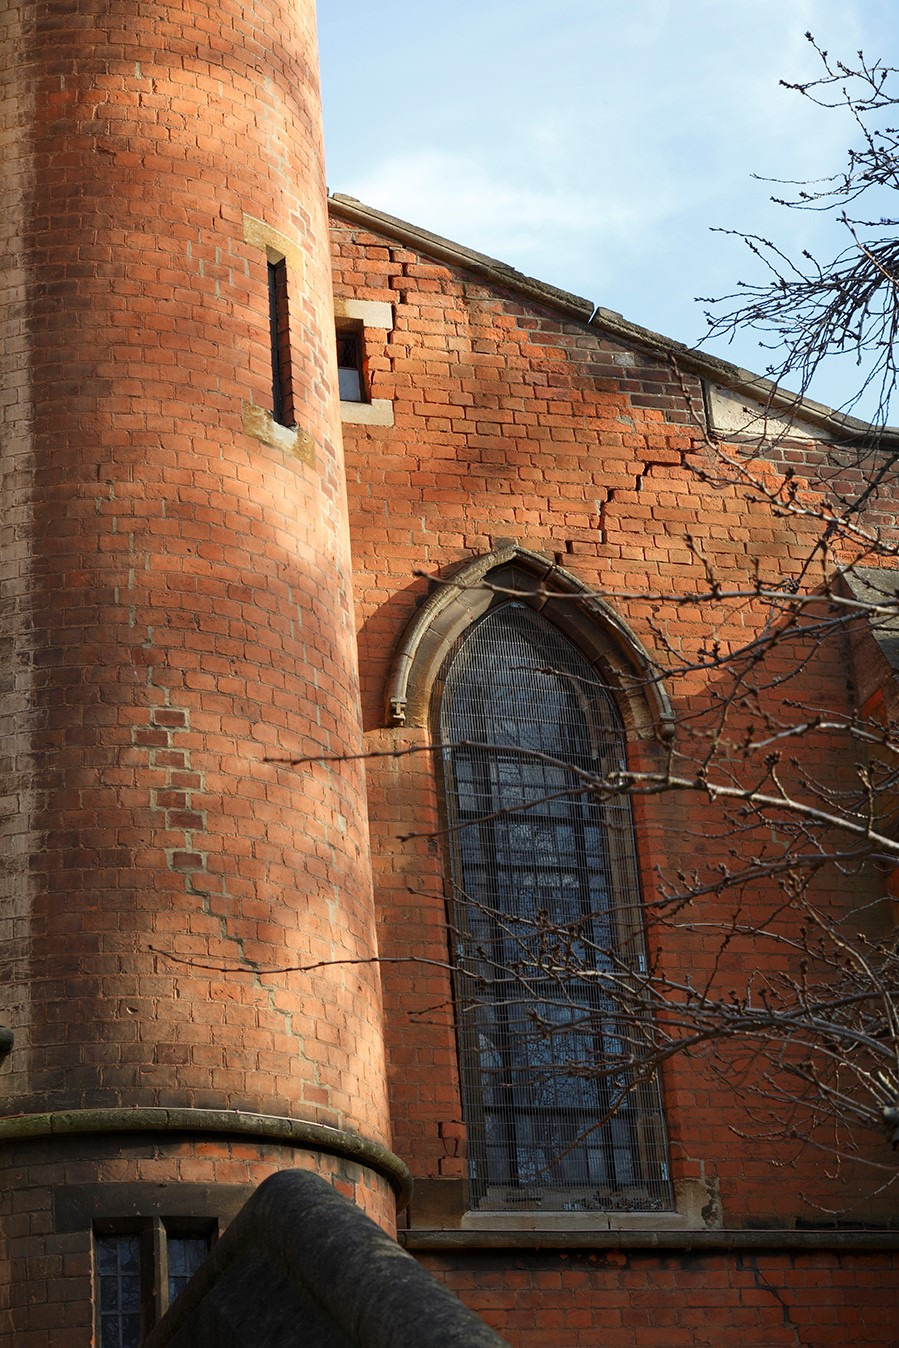 St John the Evangelist, Upper Norwood SE19 2RX Subsidence Damage Photography - MUST CREDIT (c) James Balston